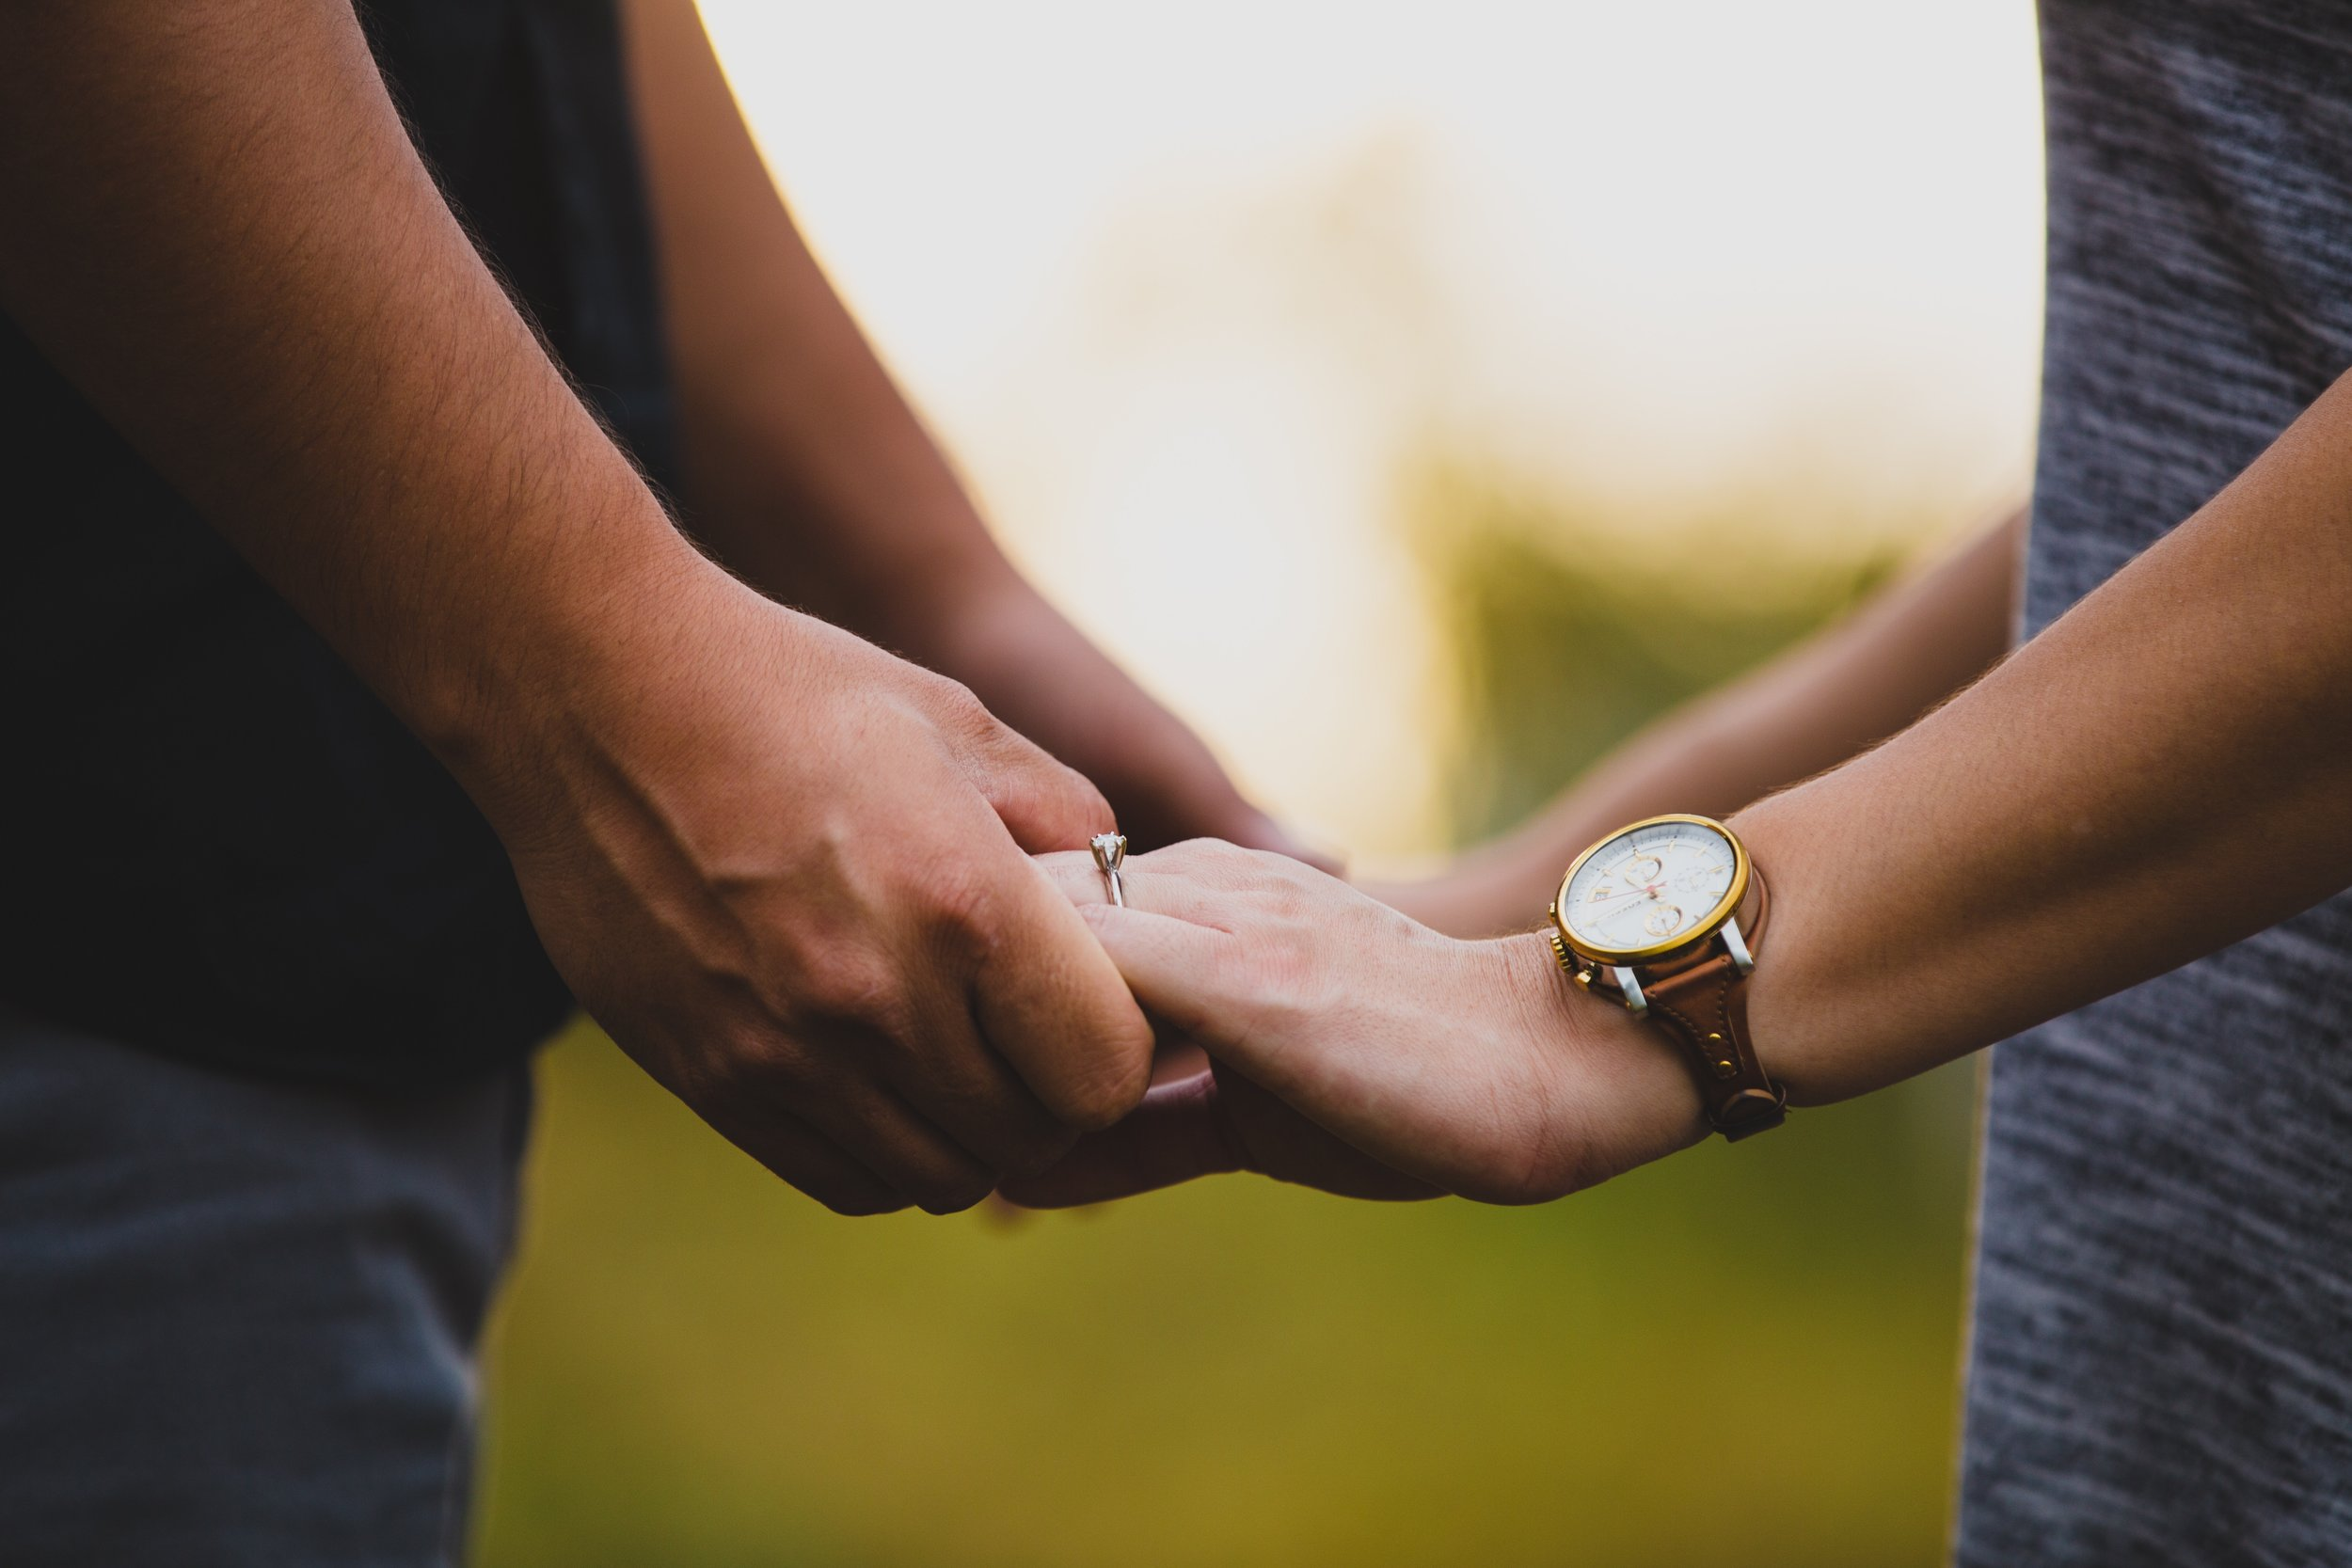 Married_Couple_Holding_Hands_Photo_By_Jon_Asato_Unsplash.jpg